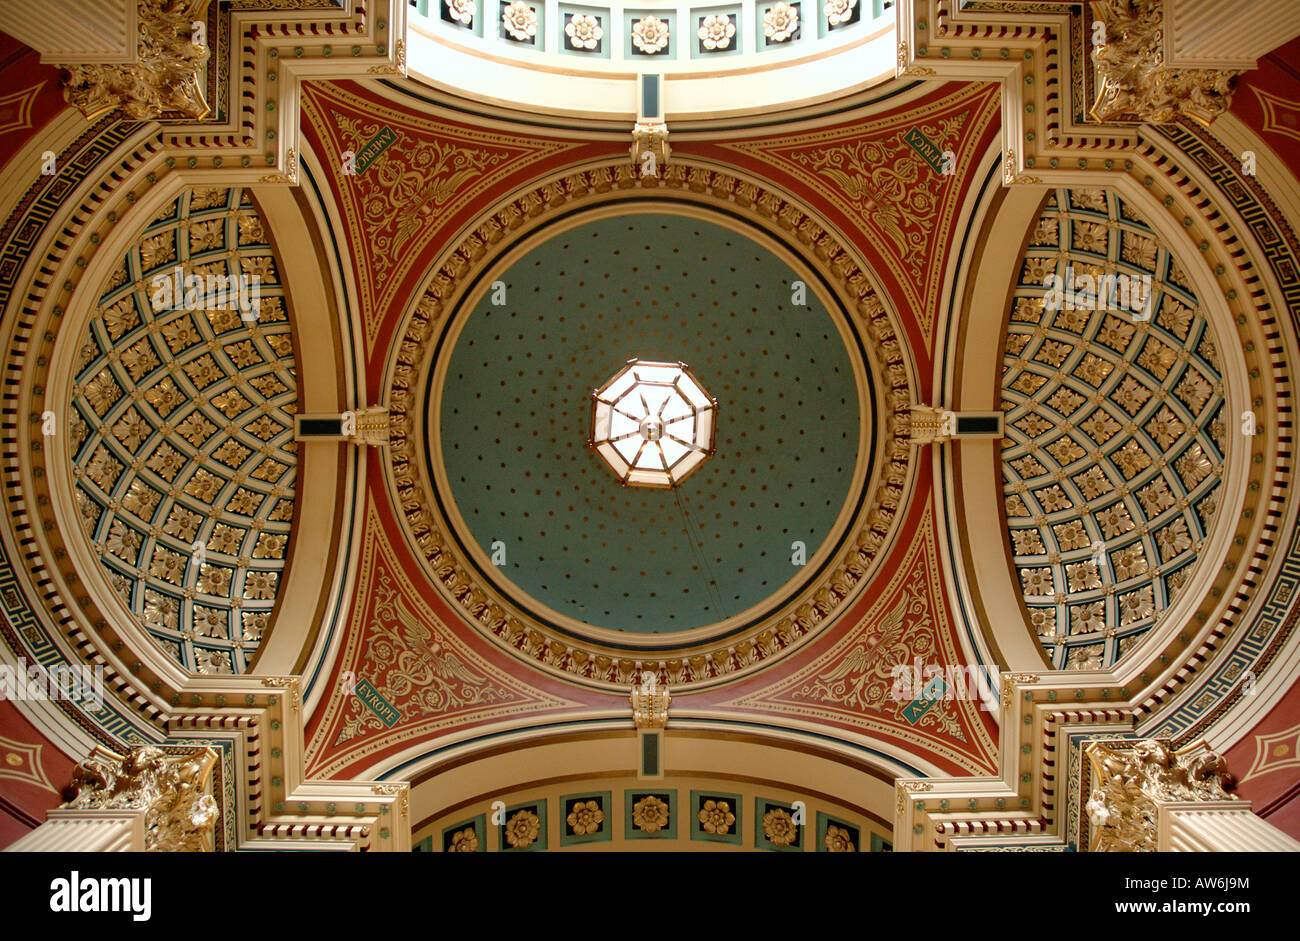 The Ceiling in the main entrance to Leeds Town Hall - Stock Image